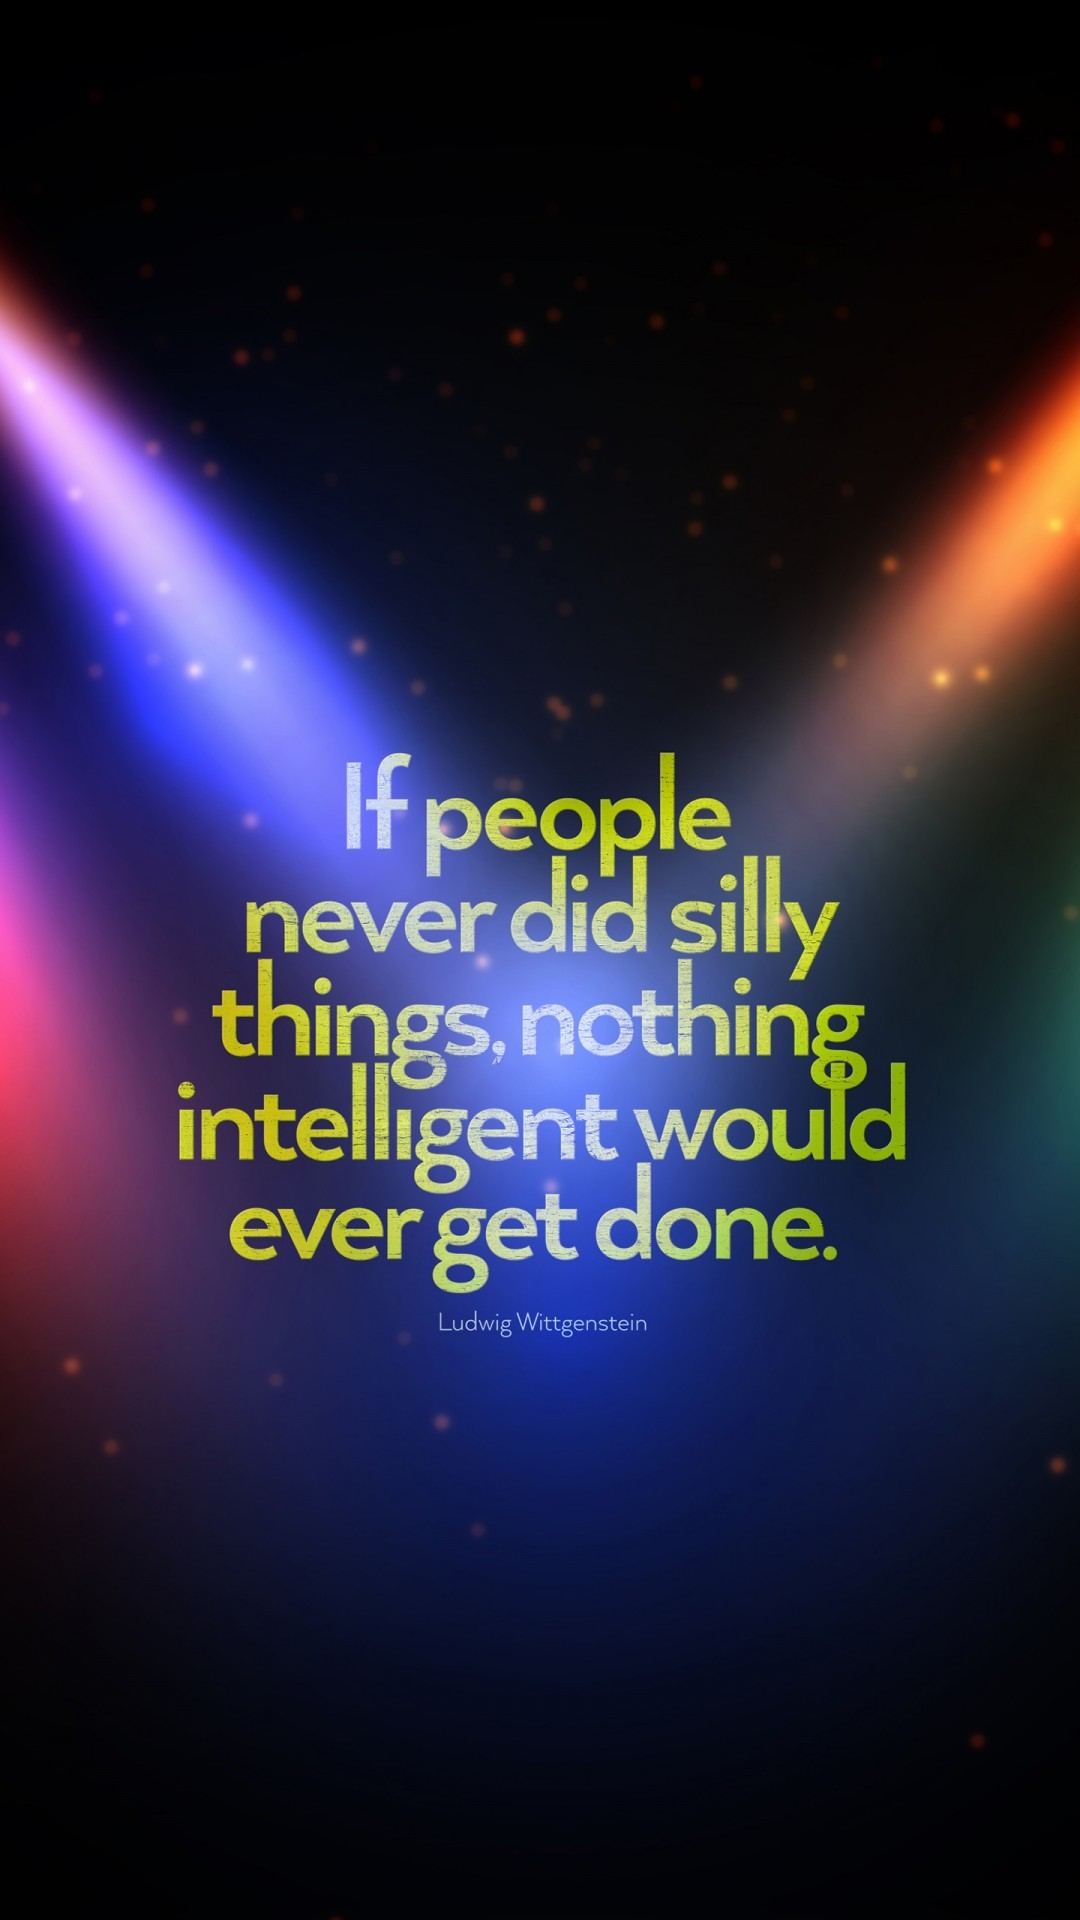 Free Intelligent Popular Quotes phone wallpaper by csr489666